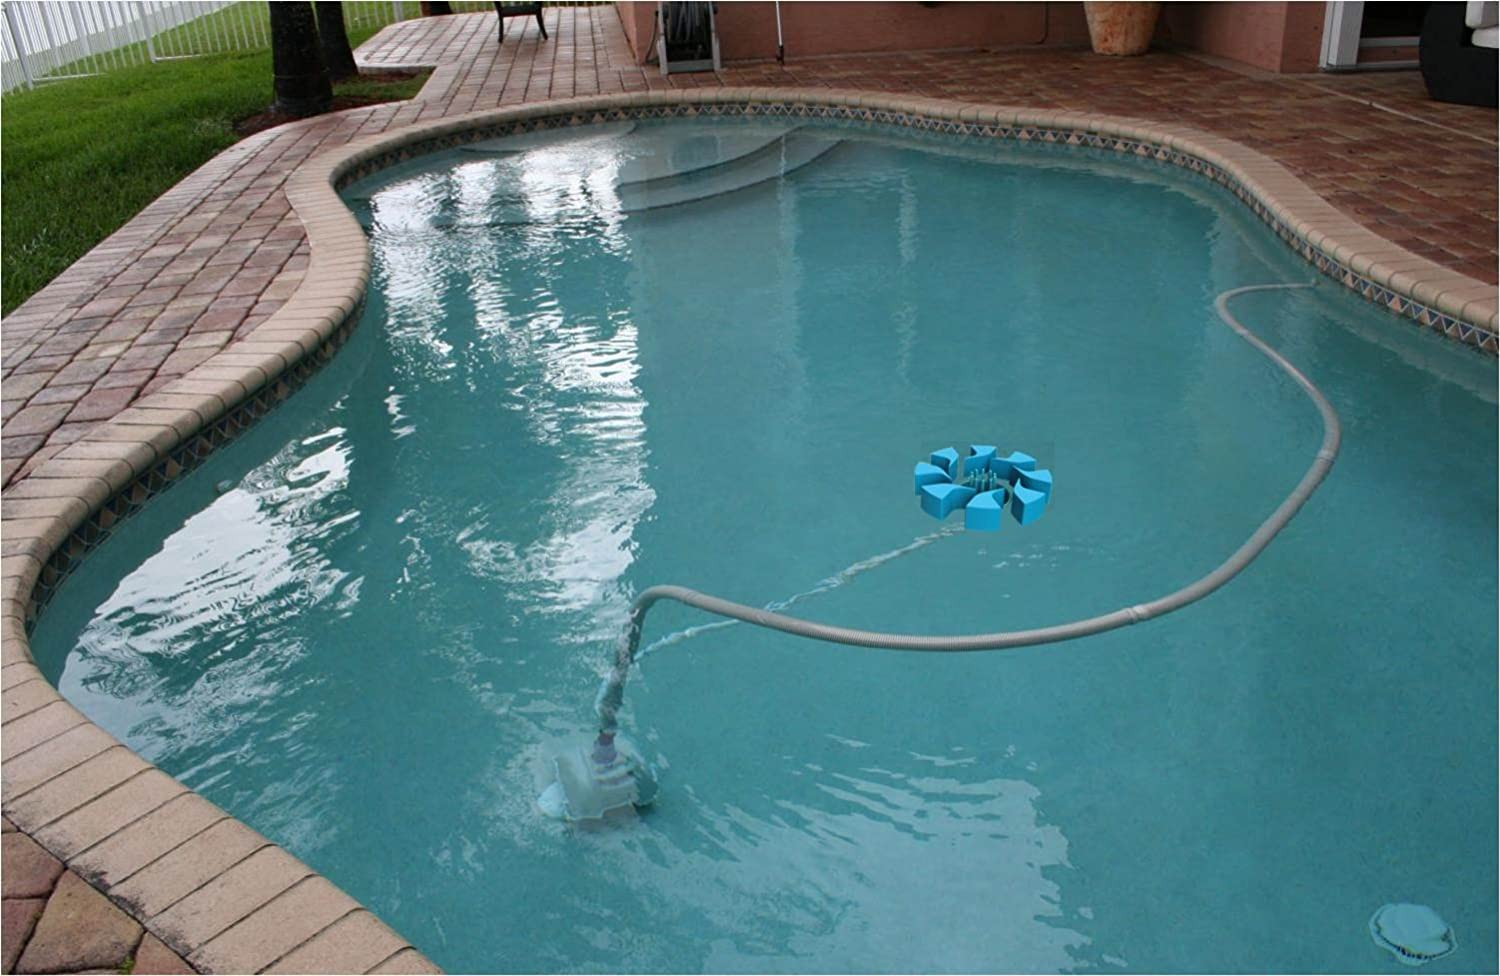 Floating Pool Skimmer Images Galleries With A Bite